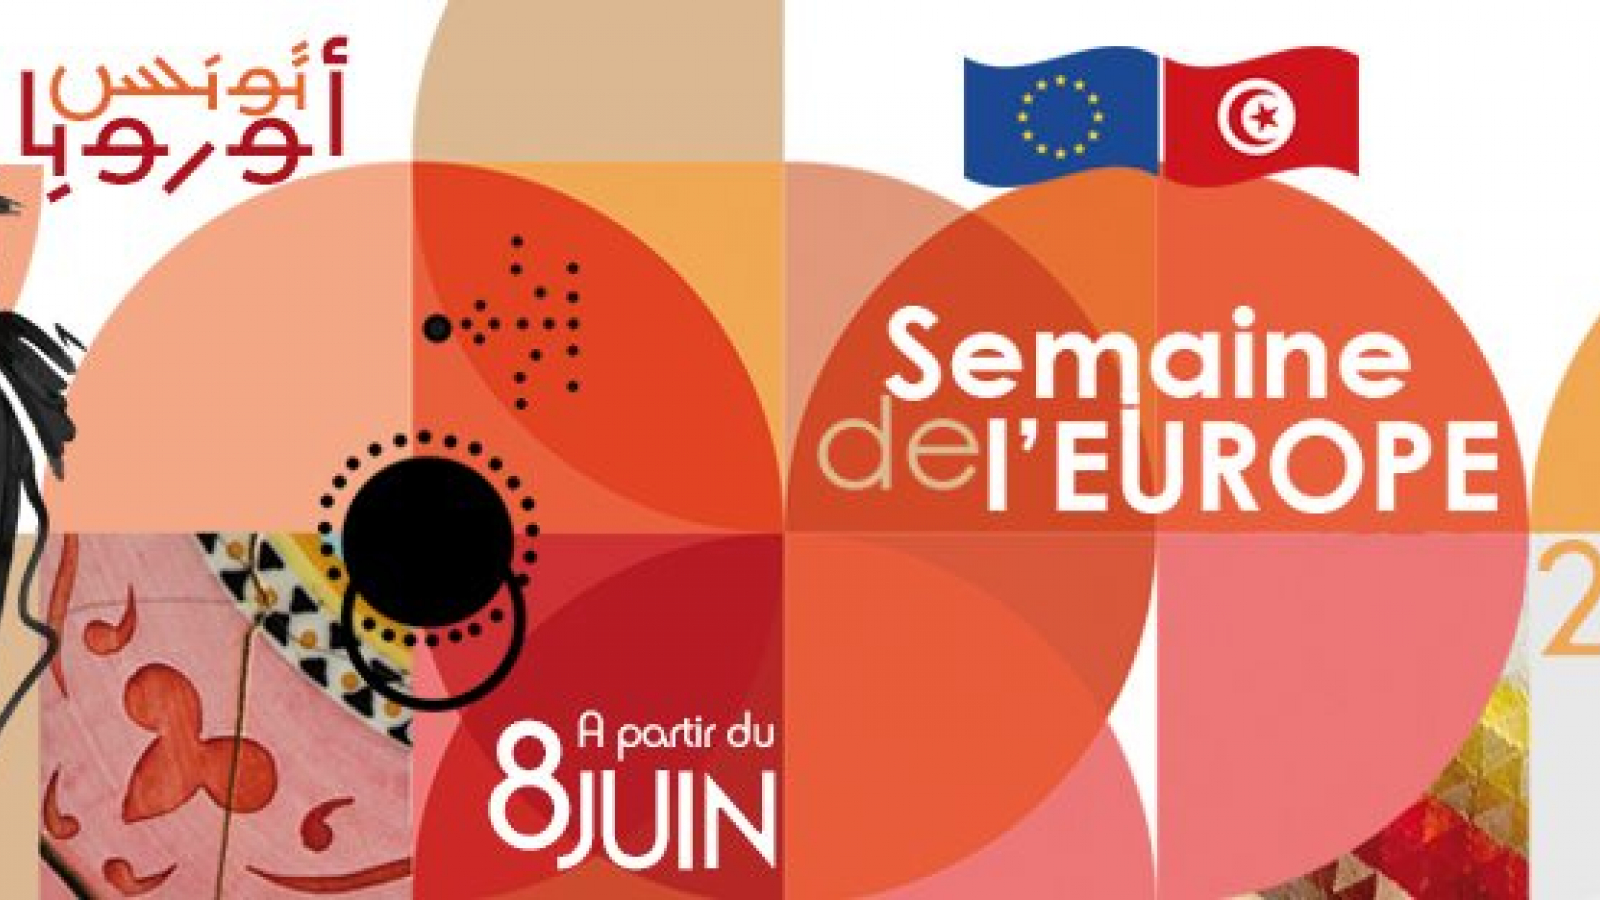 EU Delegation in Tunisia launches European Week